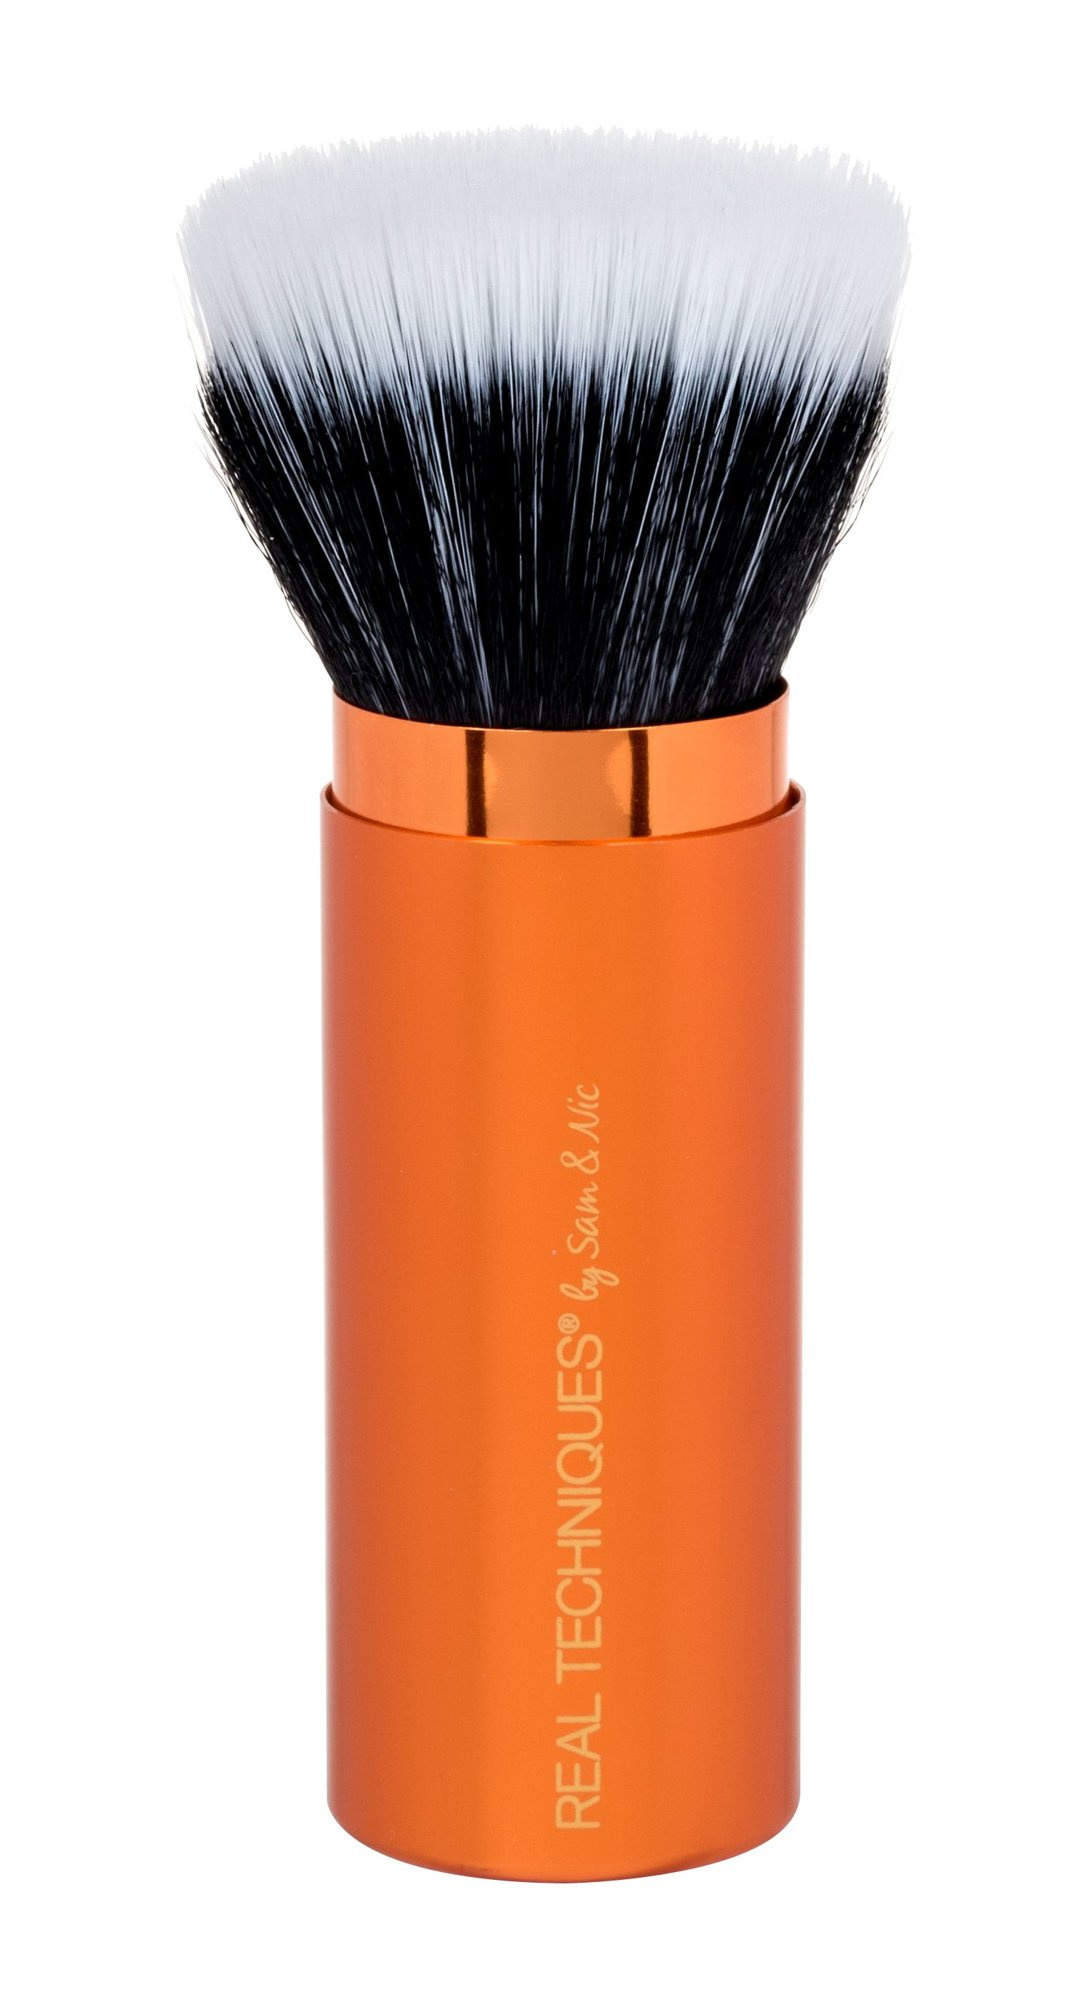 Real Techniques Base Retractable Bronzer Brush Cosmetic 1ks